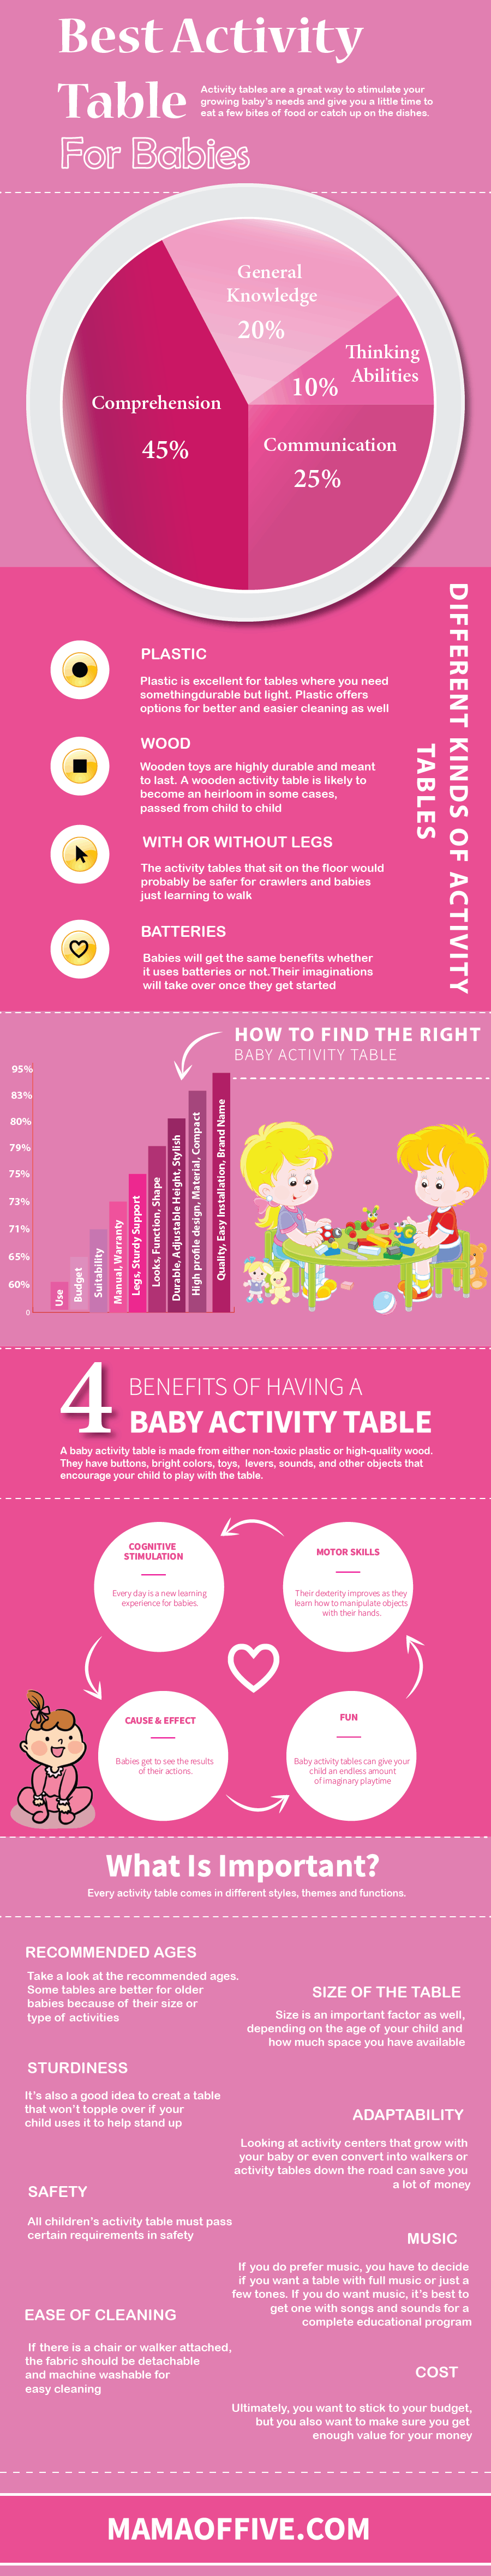 Best Baby Activity Table - info